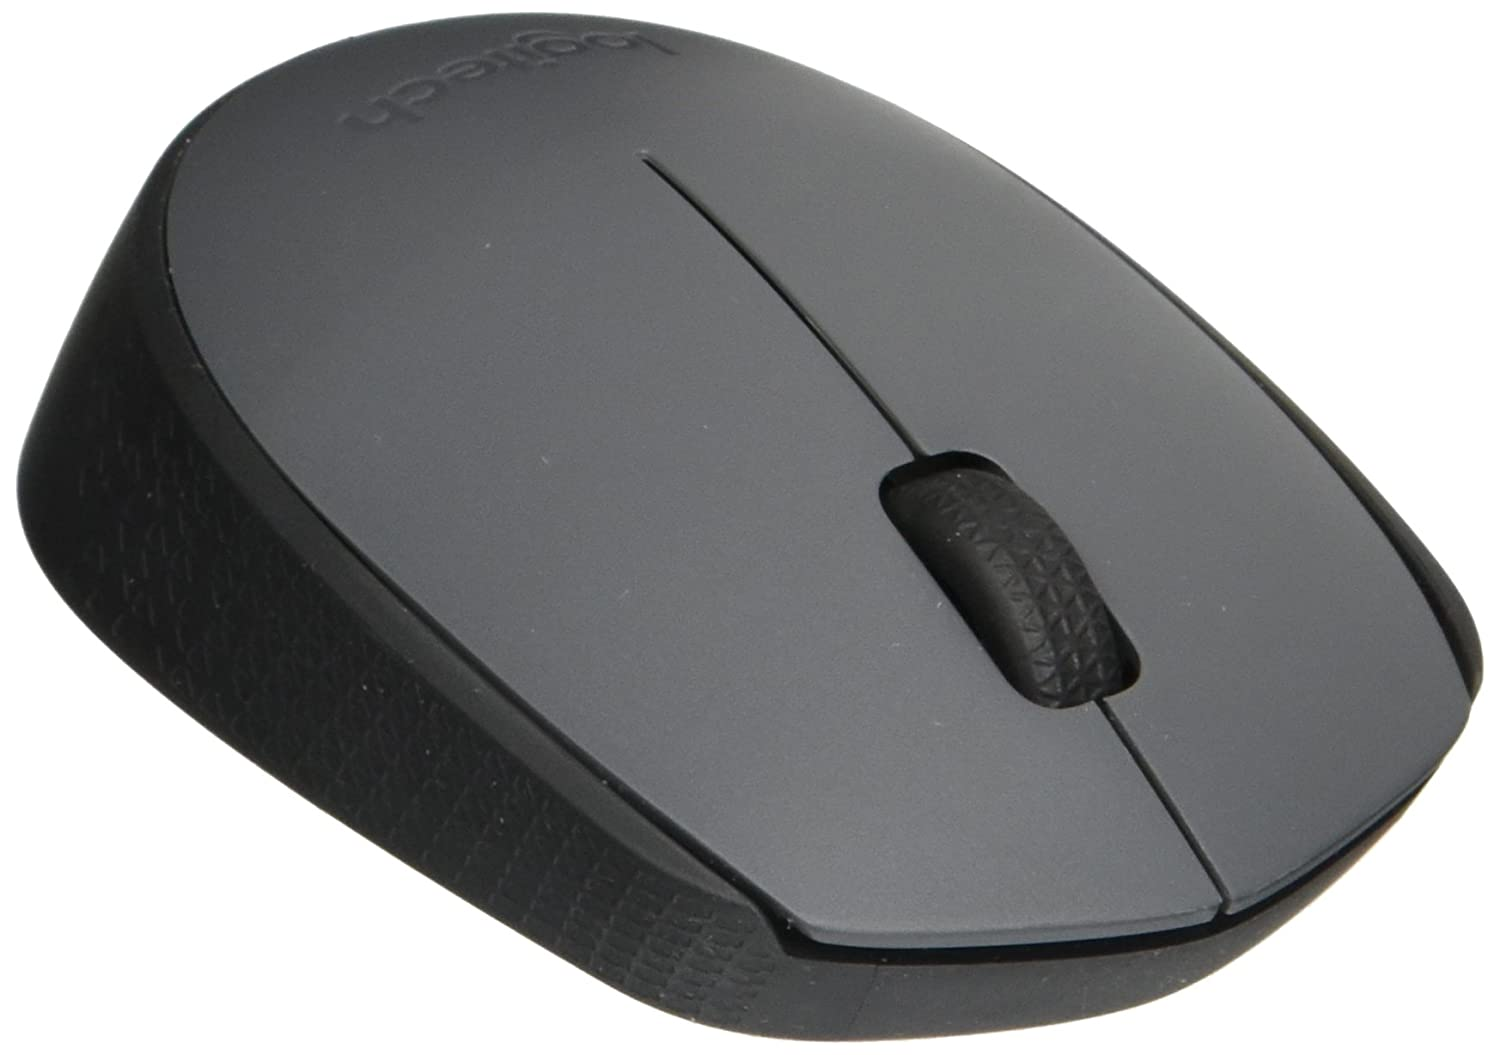 LOGITECH 910-004425 Wireless Mouse M170 for PC and Mac, Grey